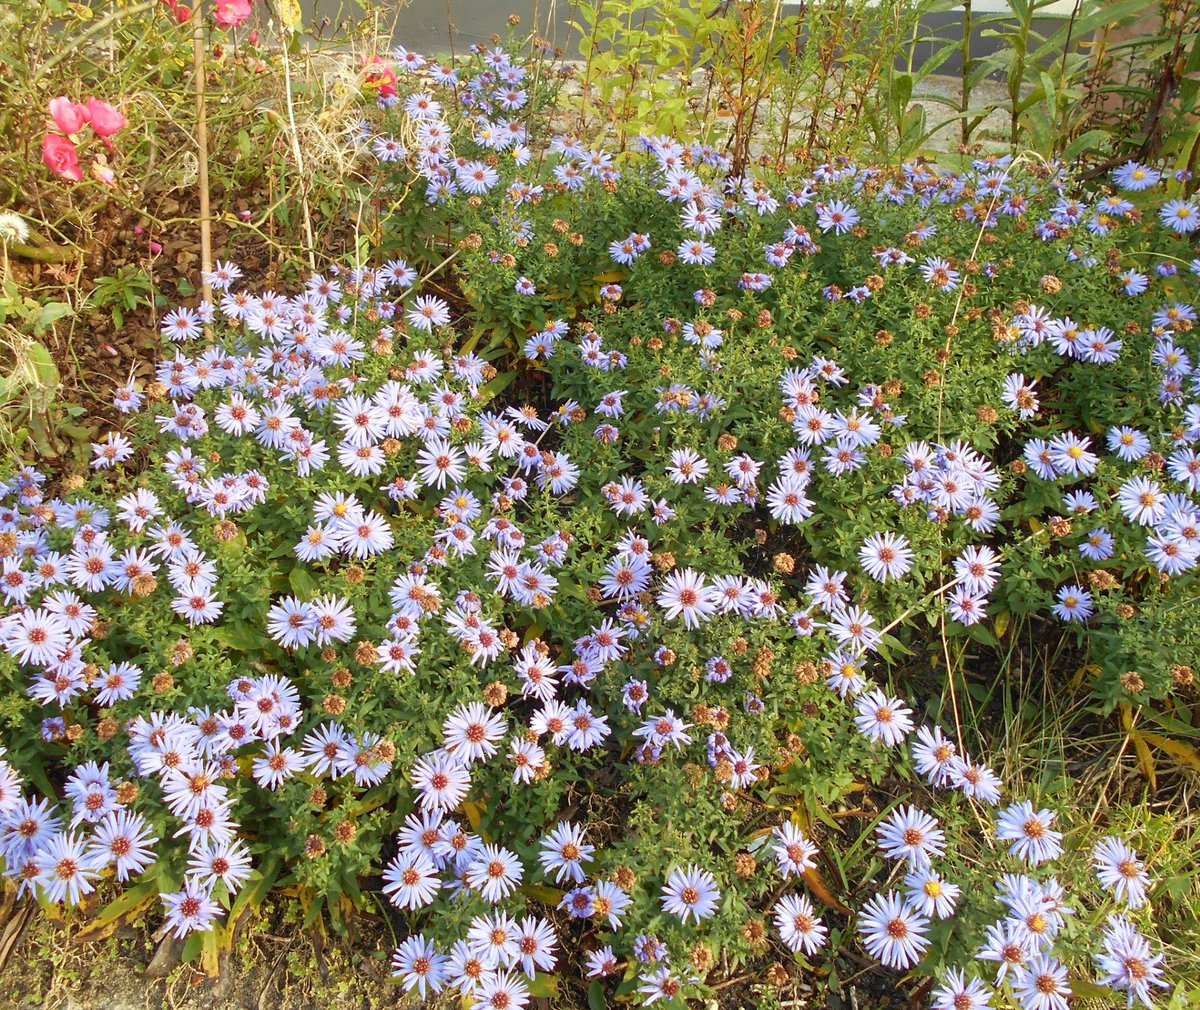 Asters#autumn#hamburg today #bees#asters in the autumn<br>http://pic.twitter.com/h5EGcJfHJk